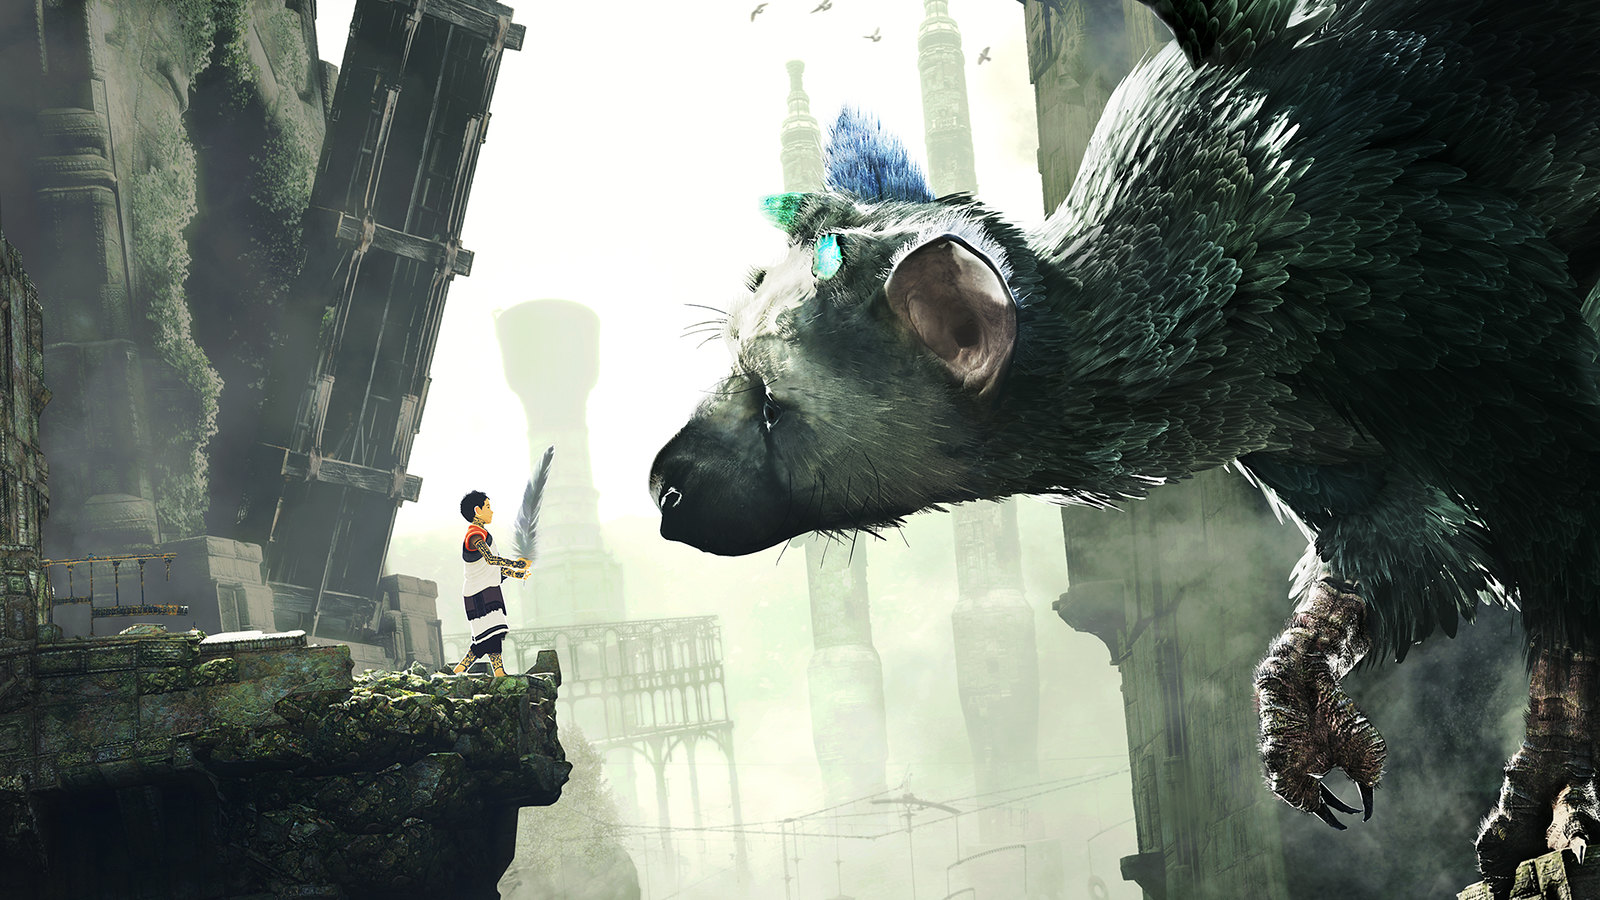 The Sounds and Music of The Last Guardian